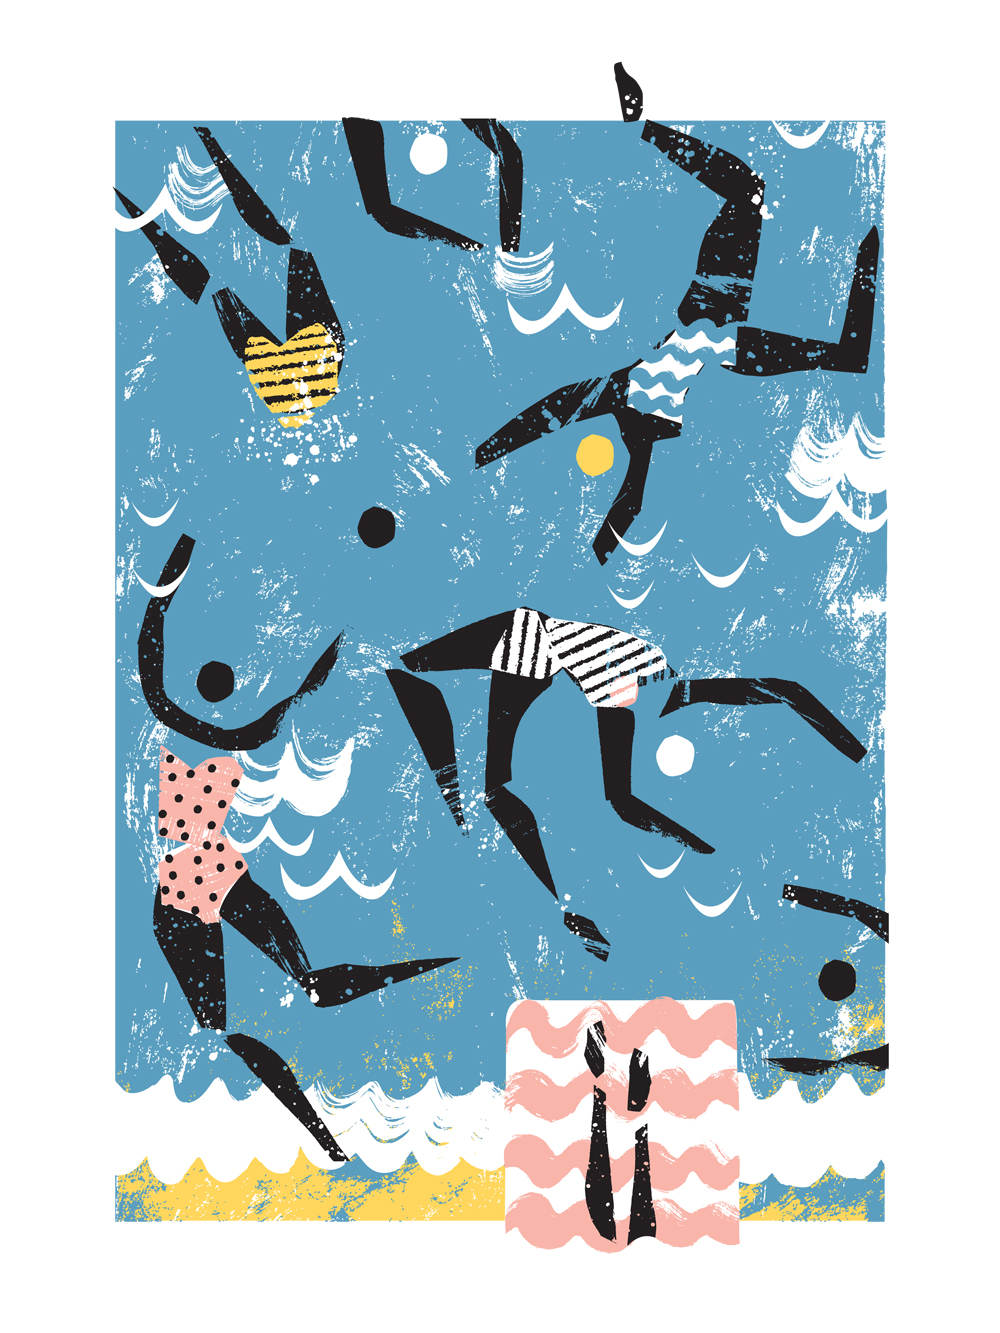 Sea Swimmers. 30 x 40 cm giclee print. Edition of 50. £